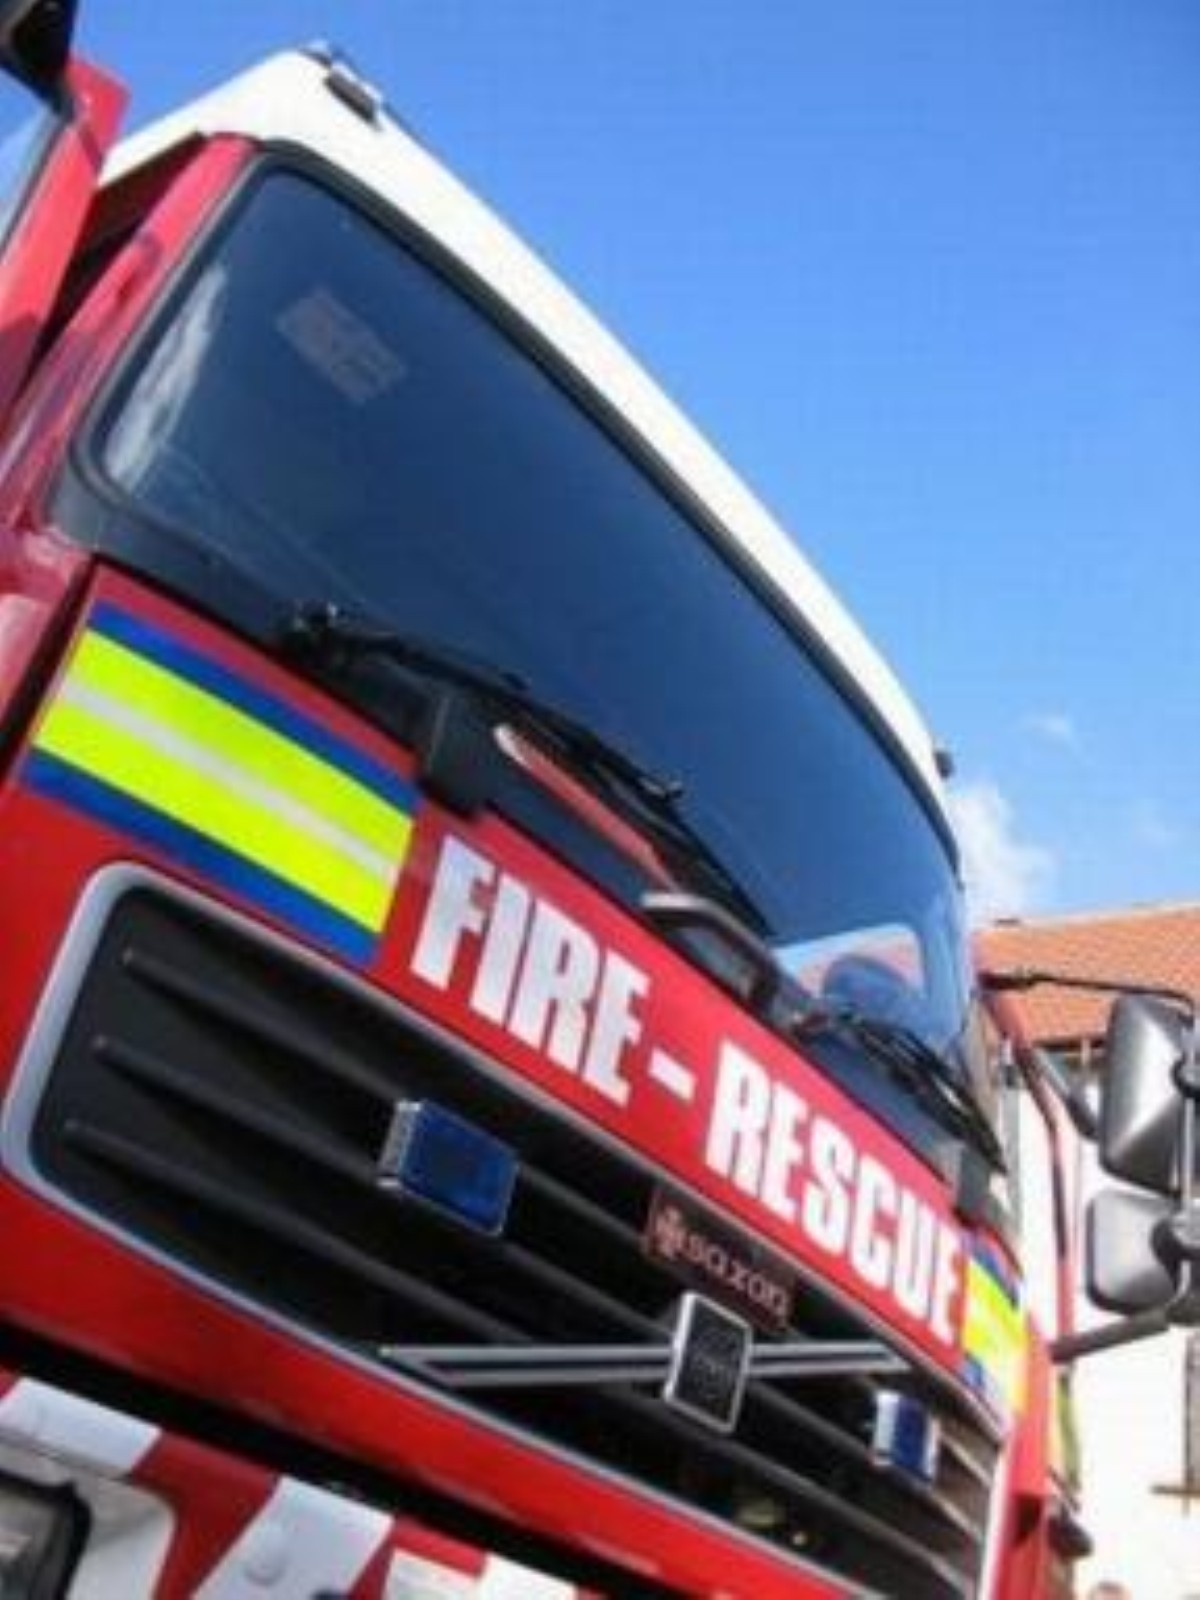 Engines from across the South West were sent to deal with the fire